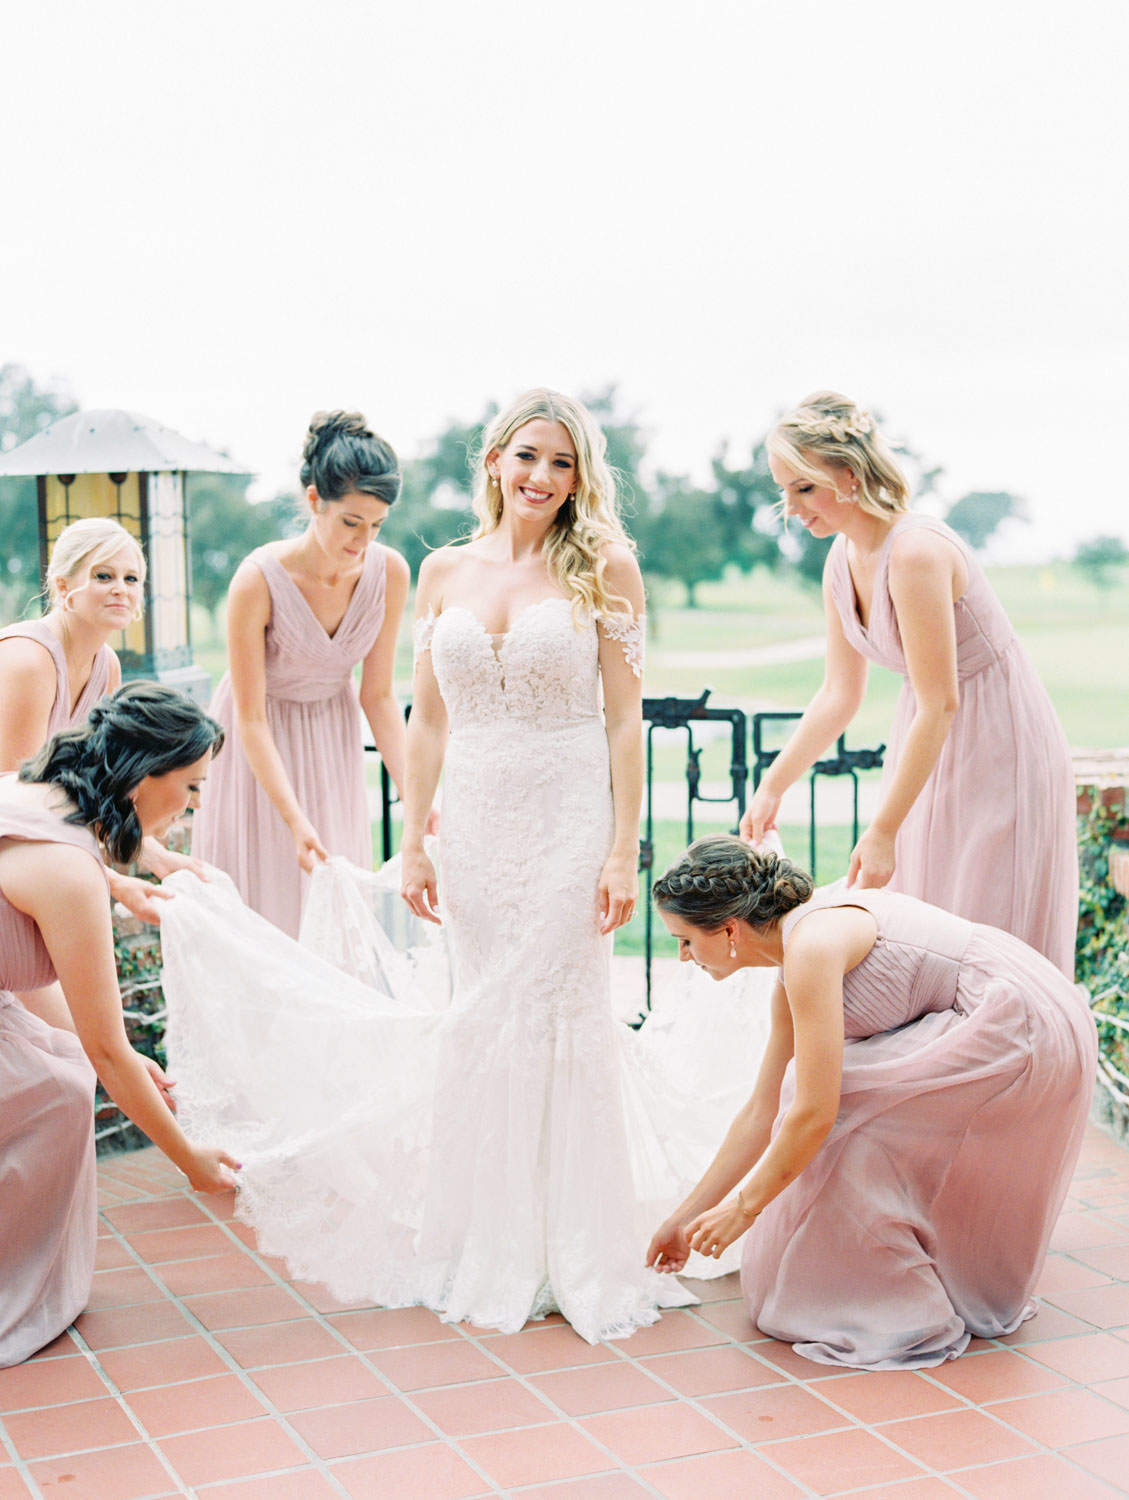 Bridesmaids in lavender dresses helping bride into off shoulder Pronovias lace wedding gown, Lodge at Torrey Pines wedding, film photography by Cavin Elizabeth Photography